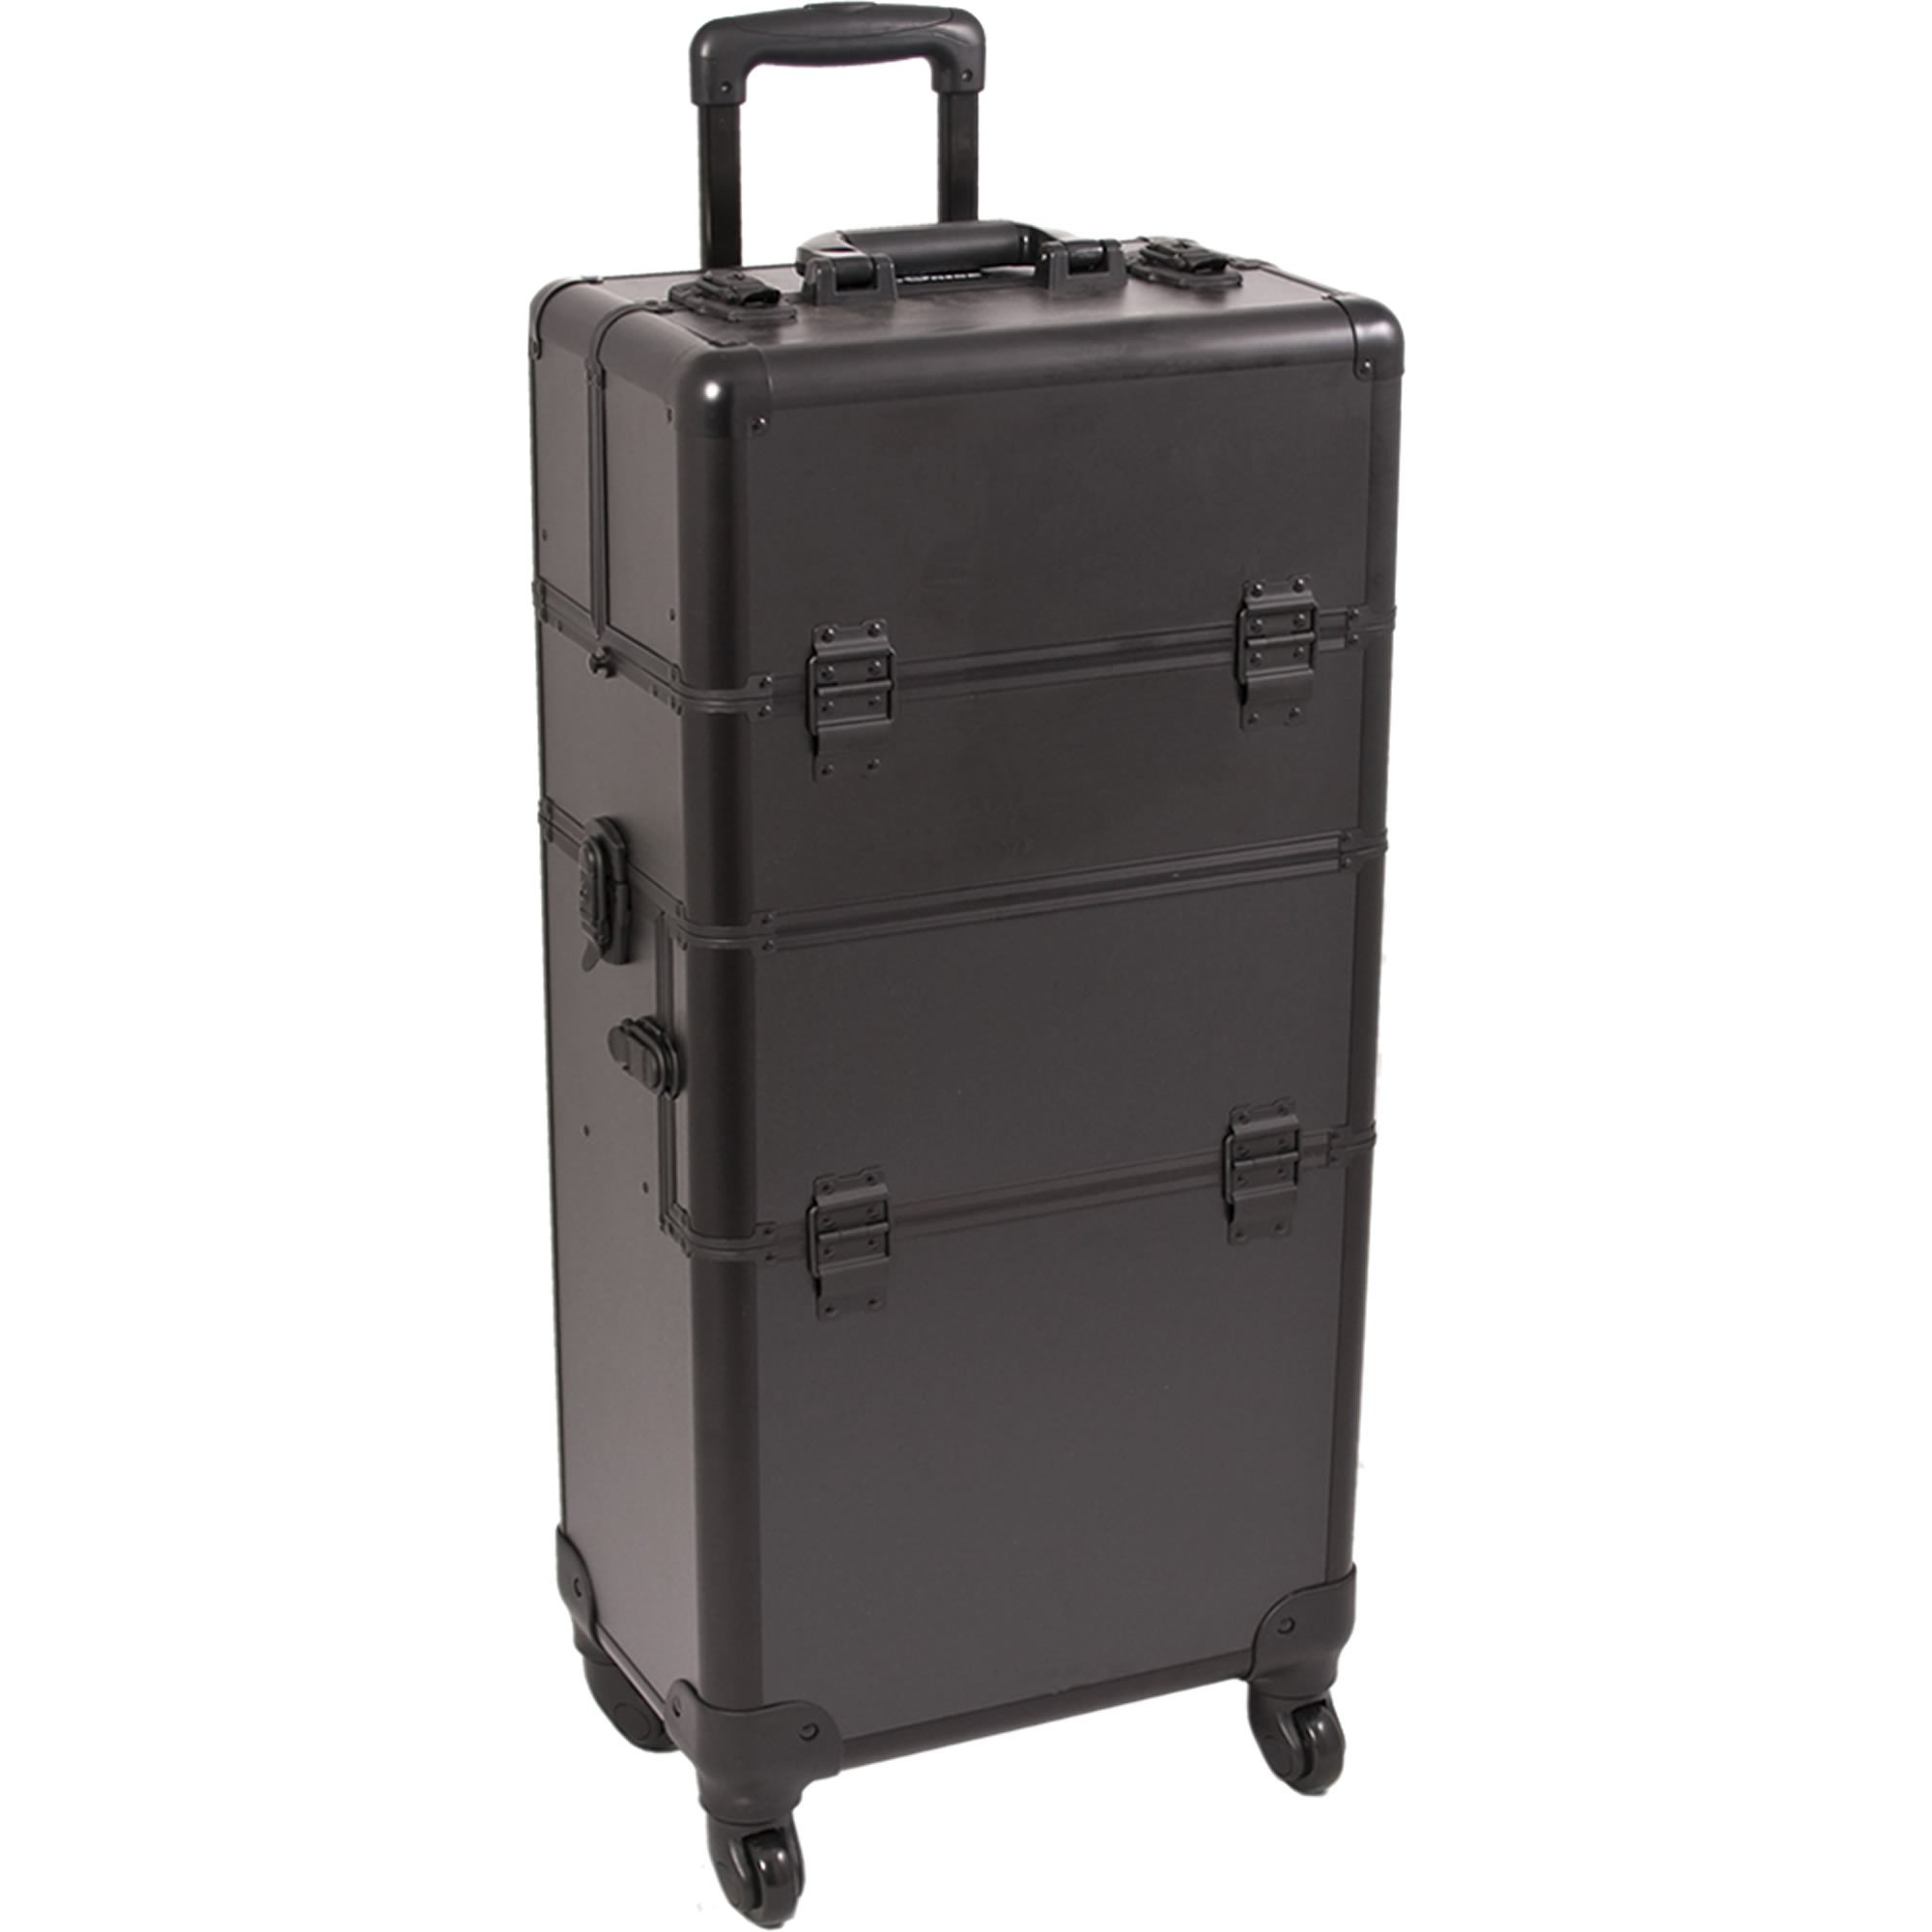 SUNRISE Makeup Case on Wheels 2 in 1 I3561 Hair Stylist Professional, 3 Trays and 1 Removable Tray, Locking with 2 Mirrors, Brush Holder and Shoulder Strap, Black Matte by SunRise